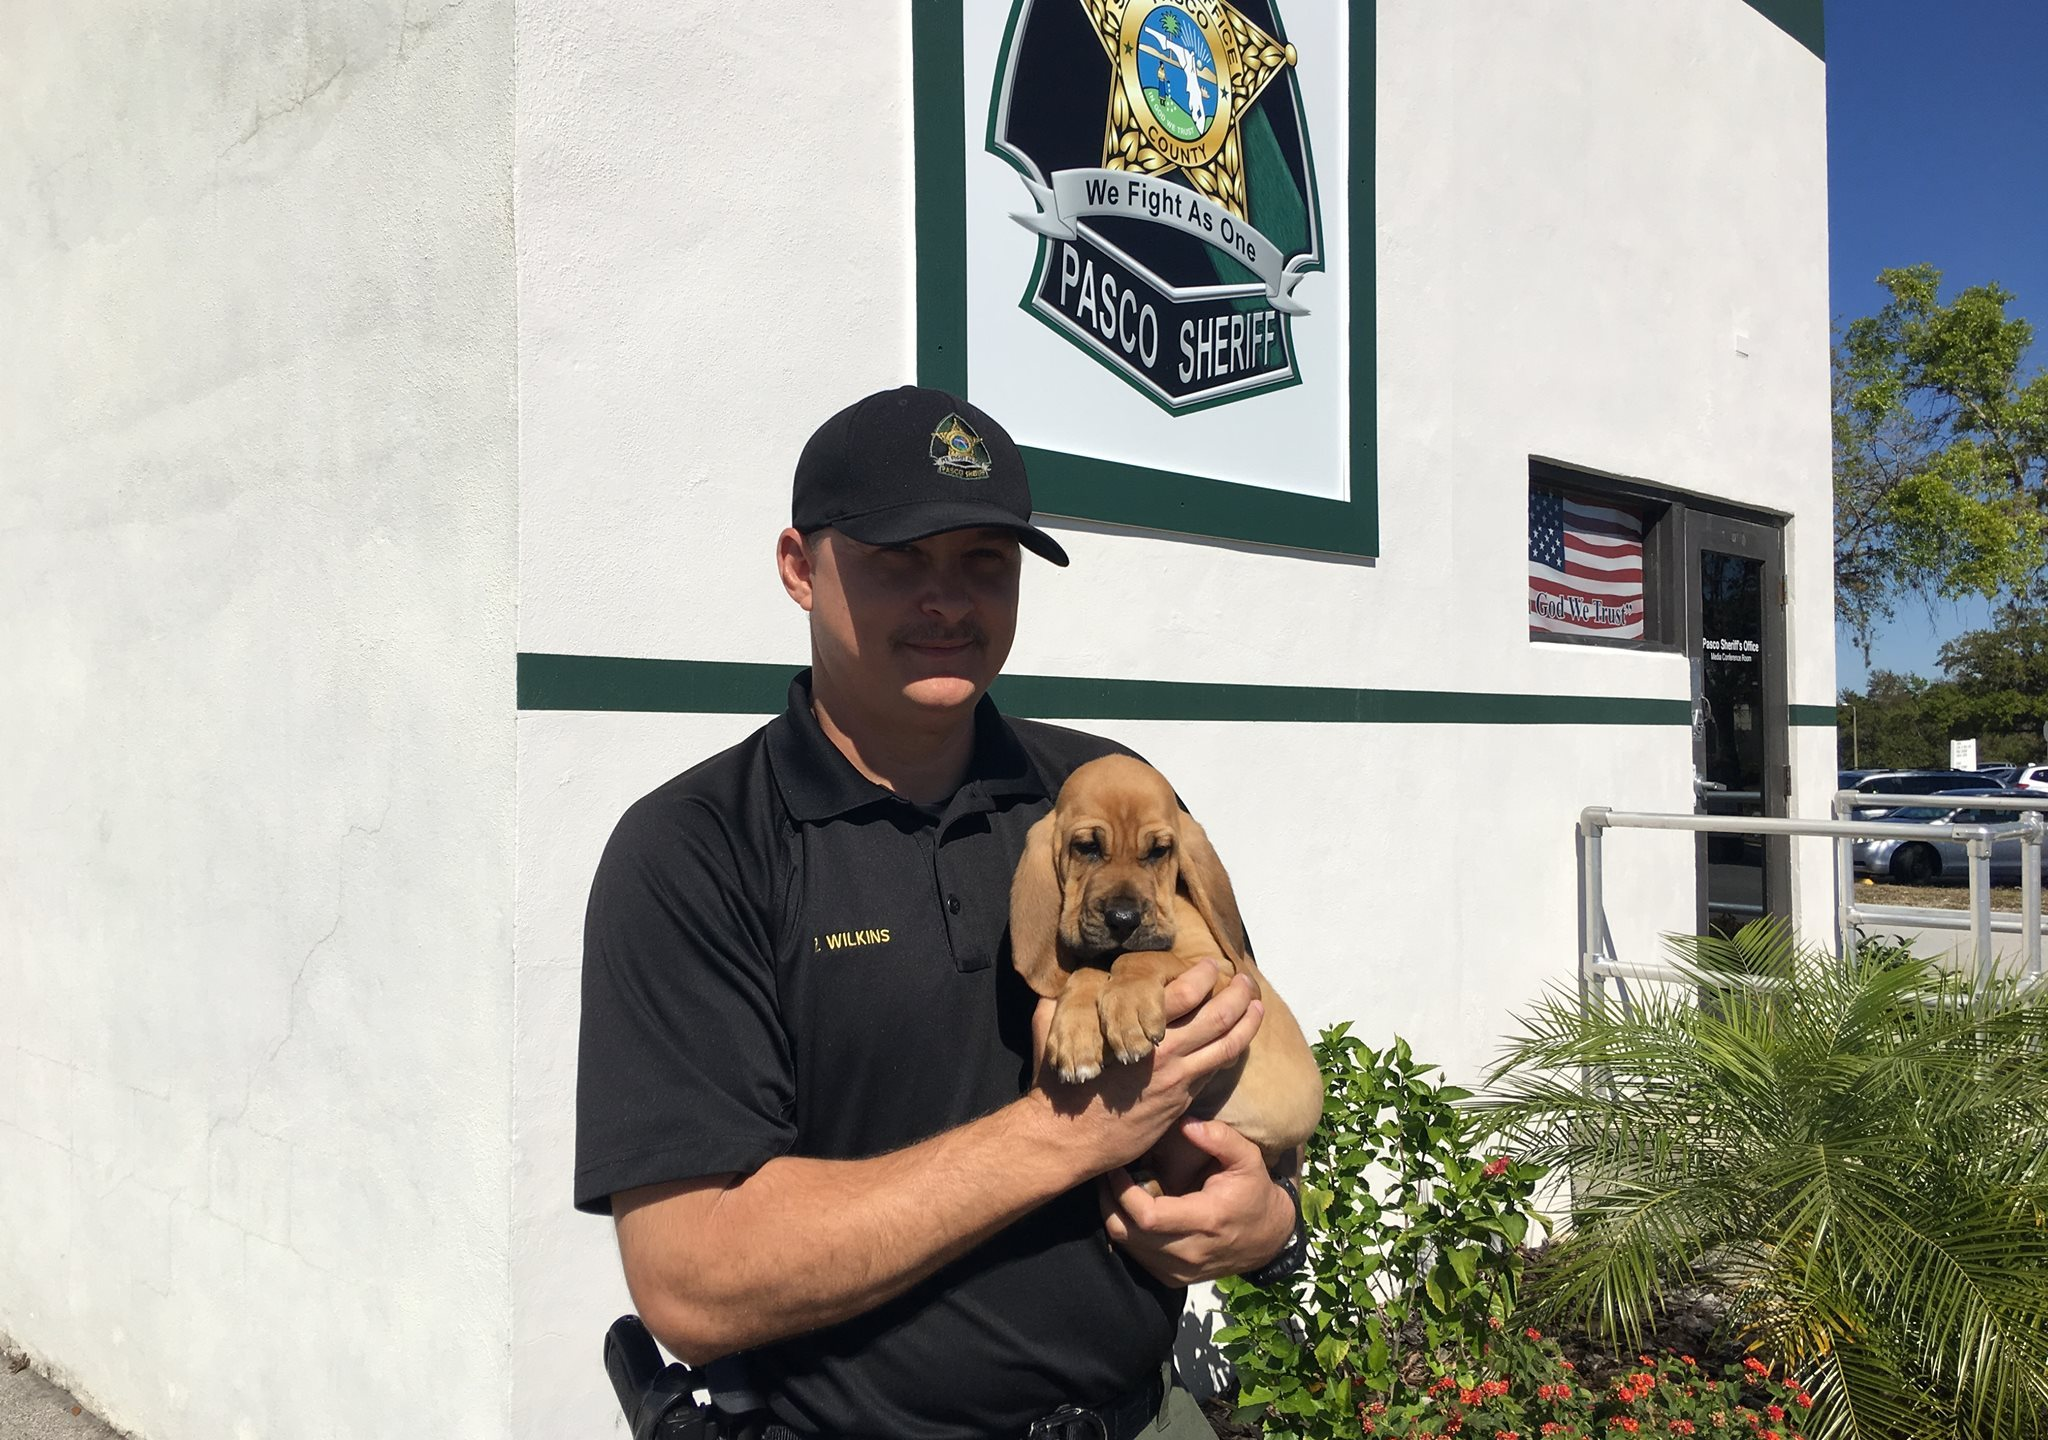 Pasco Sheriff's Office welcomes new K9 officer